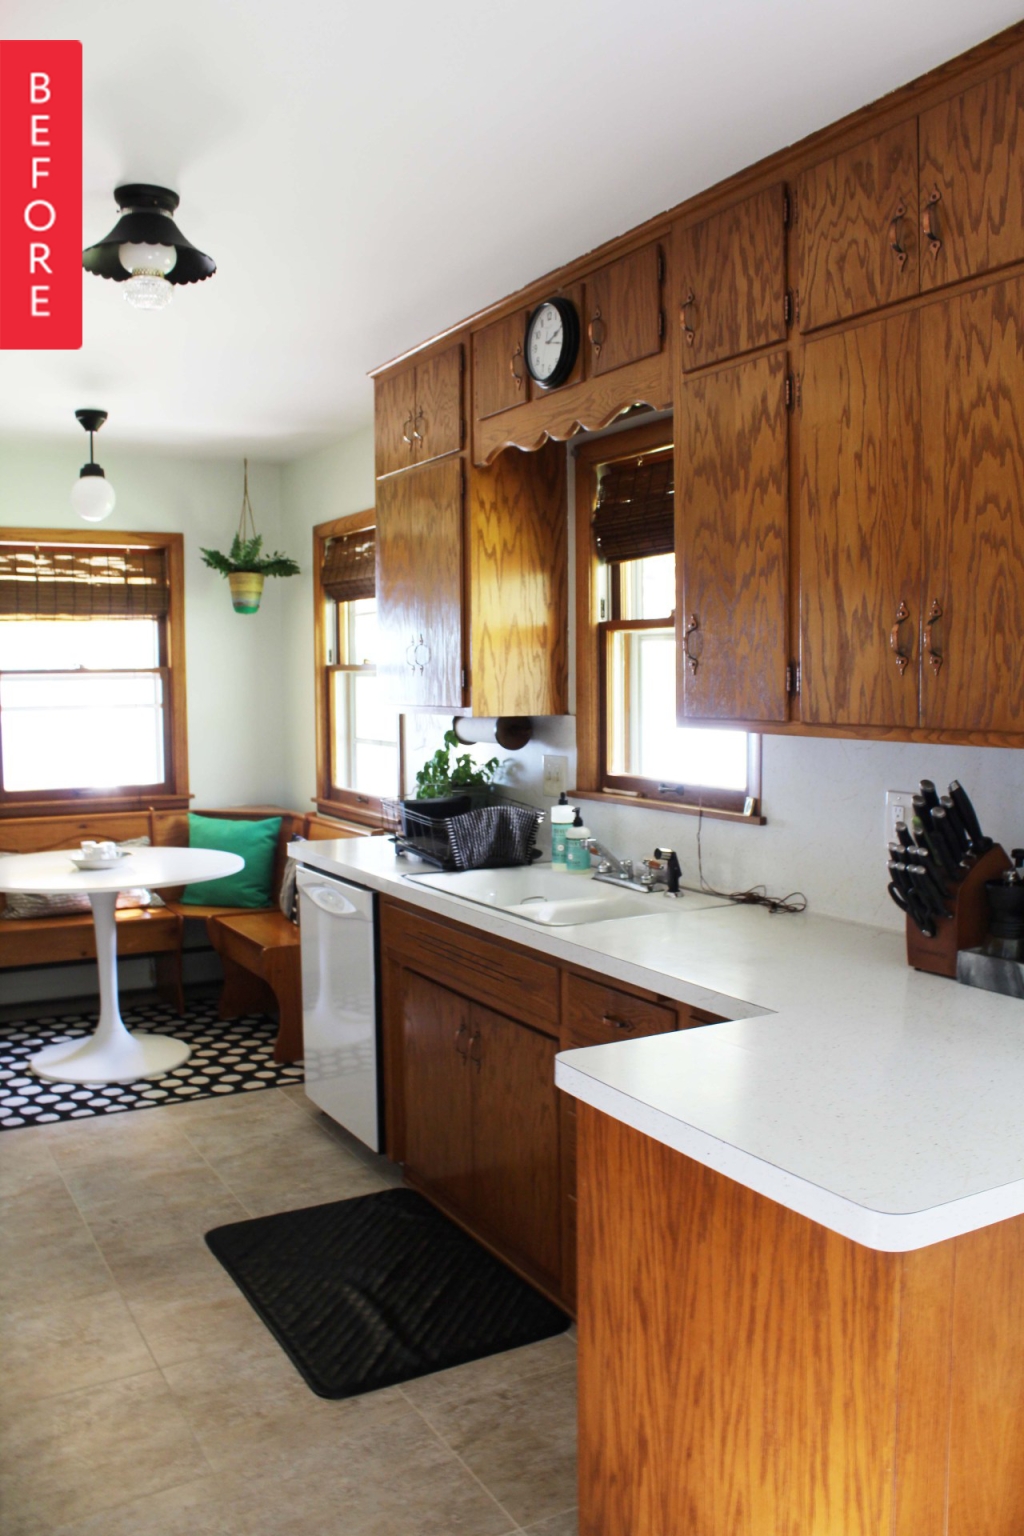 Before & After: A 1960s Kitchen Opens Up for Under $200 ...